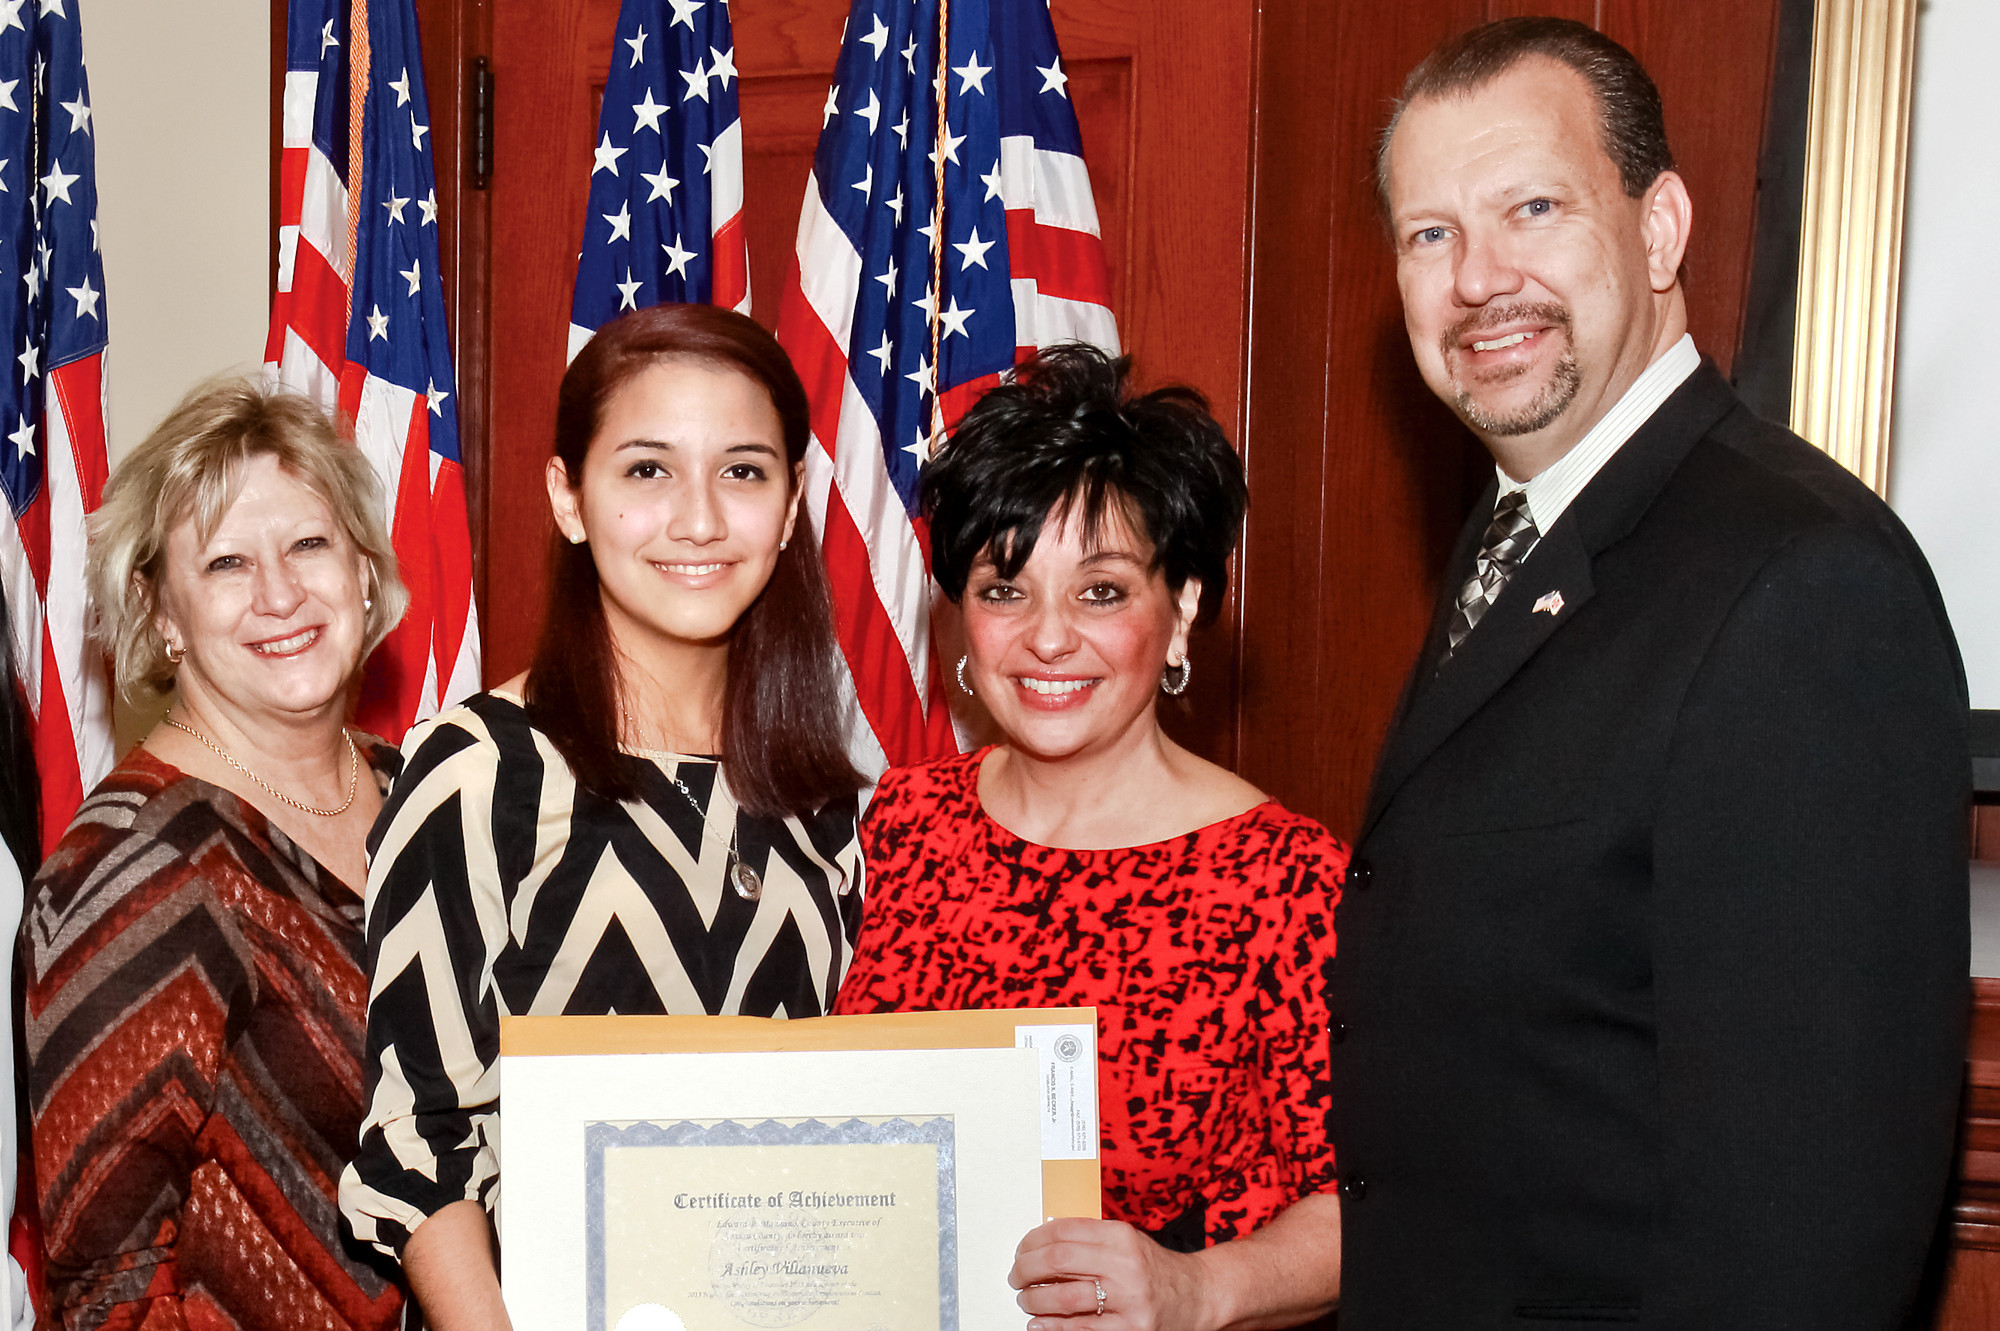 County officials honored Ashley Villanueva and other contest winners last week. From left are South Principal Maureen Henry, Villanueva, Linda Mangano and South teacher and Valley Stream Mayor Ed Fare.